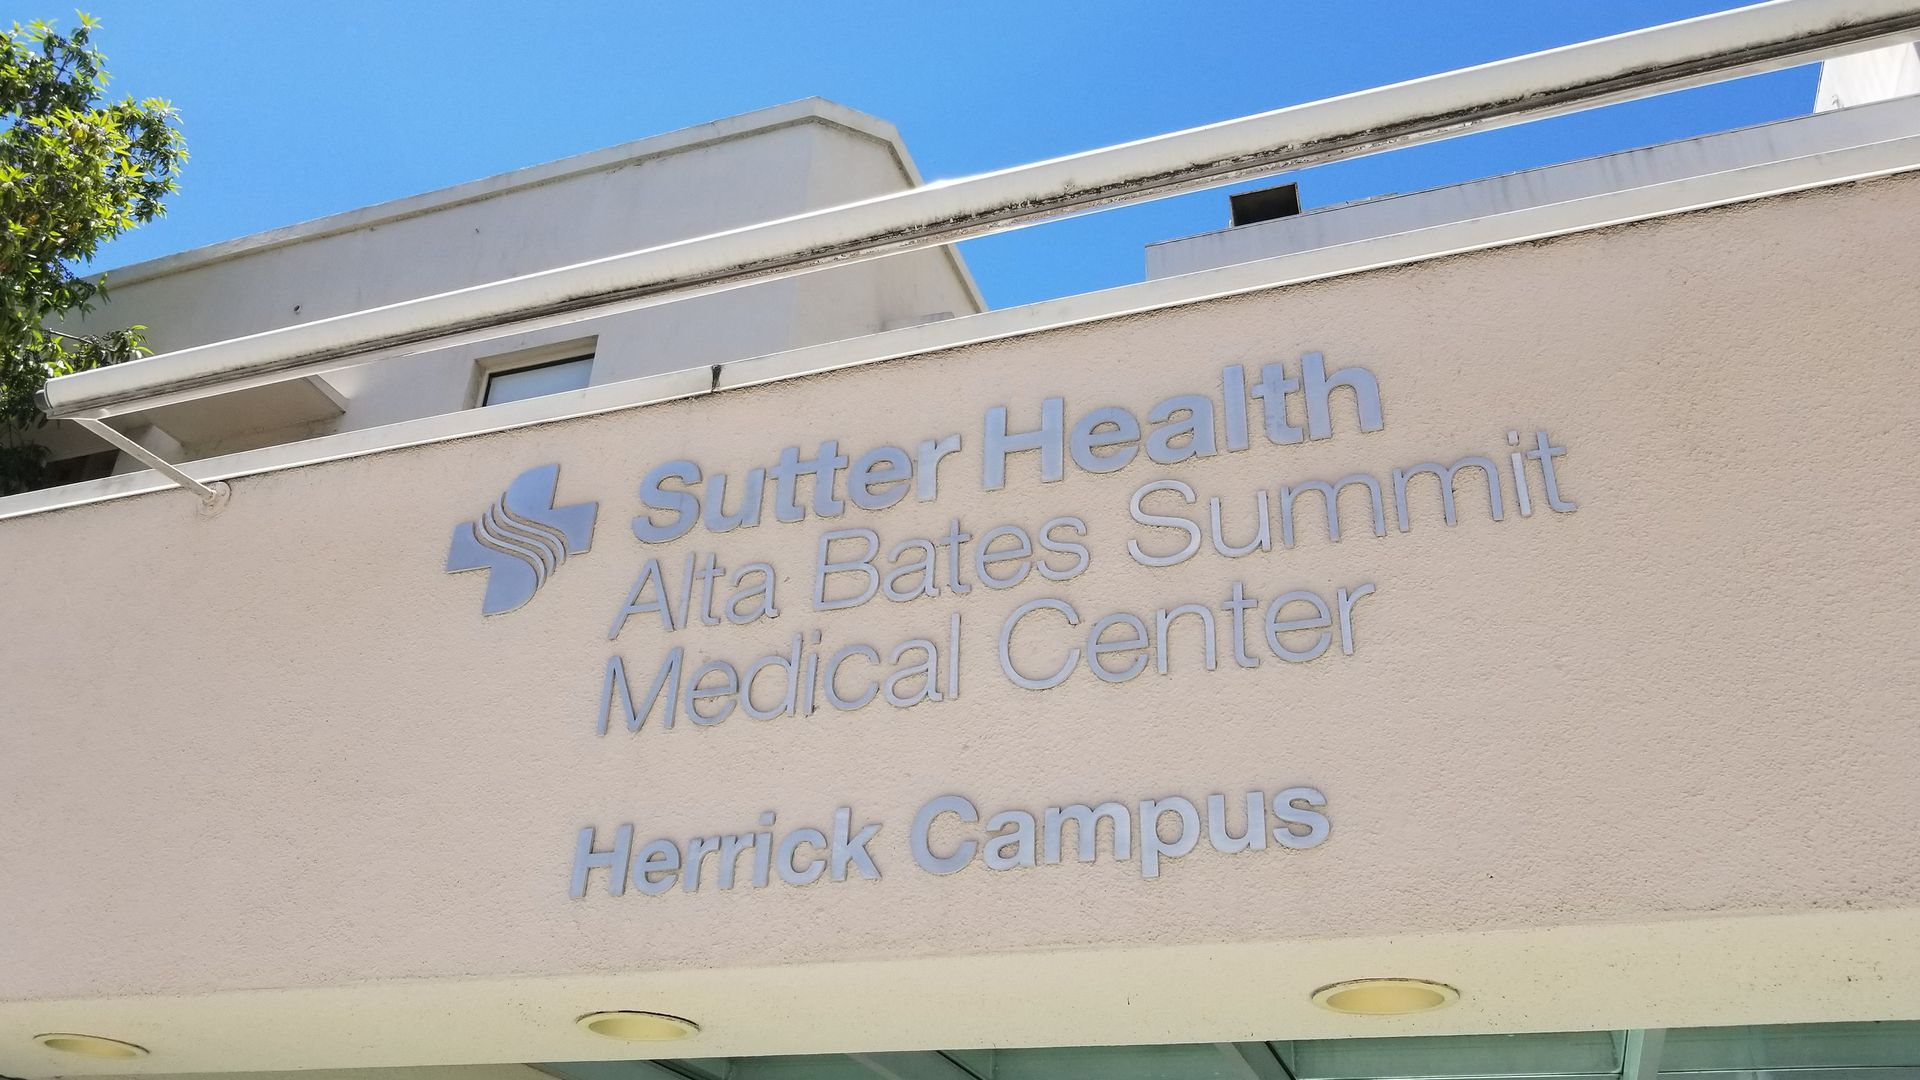 A sign showing the Sutter Health Alta Bates Summit Medical Center.